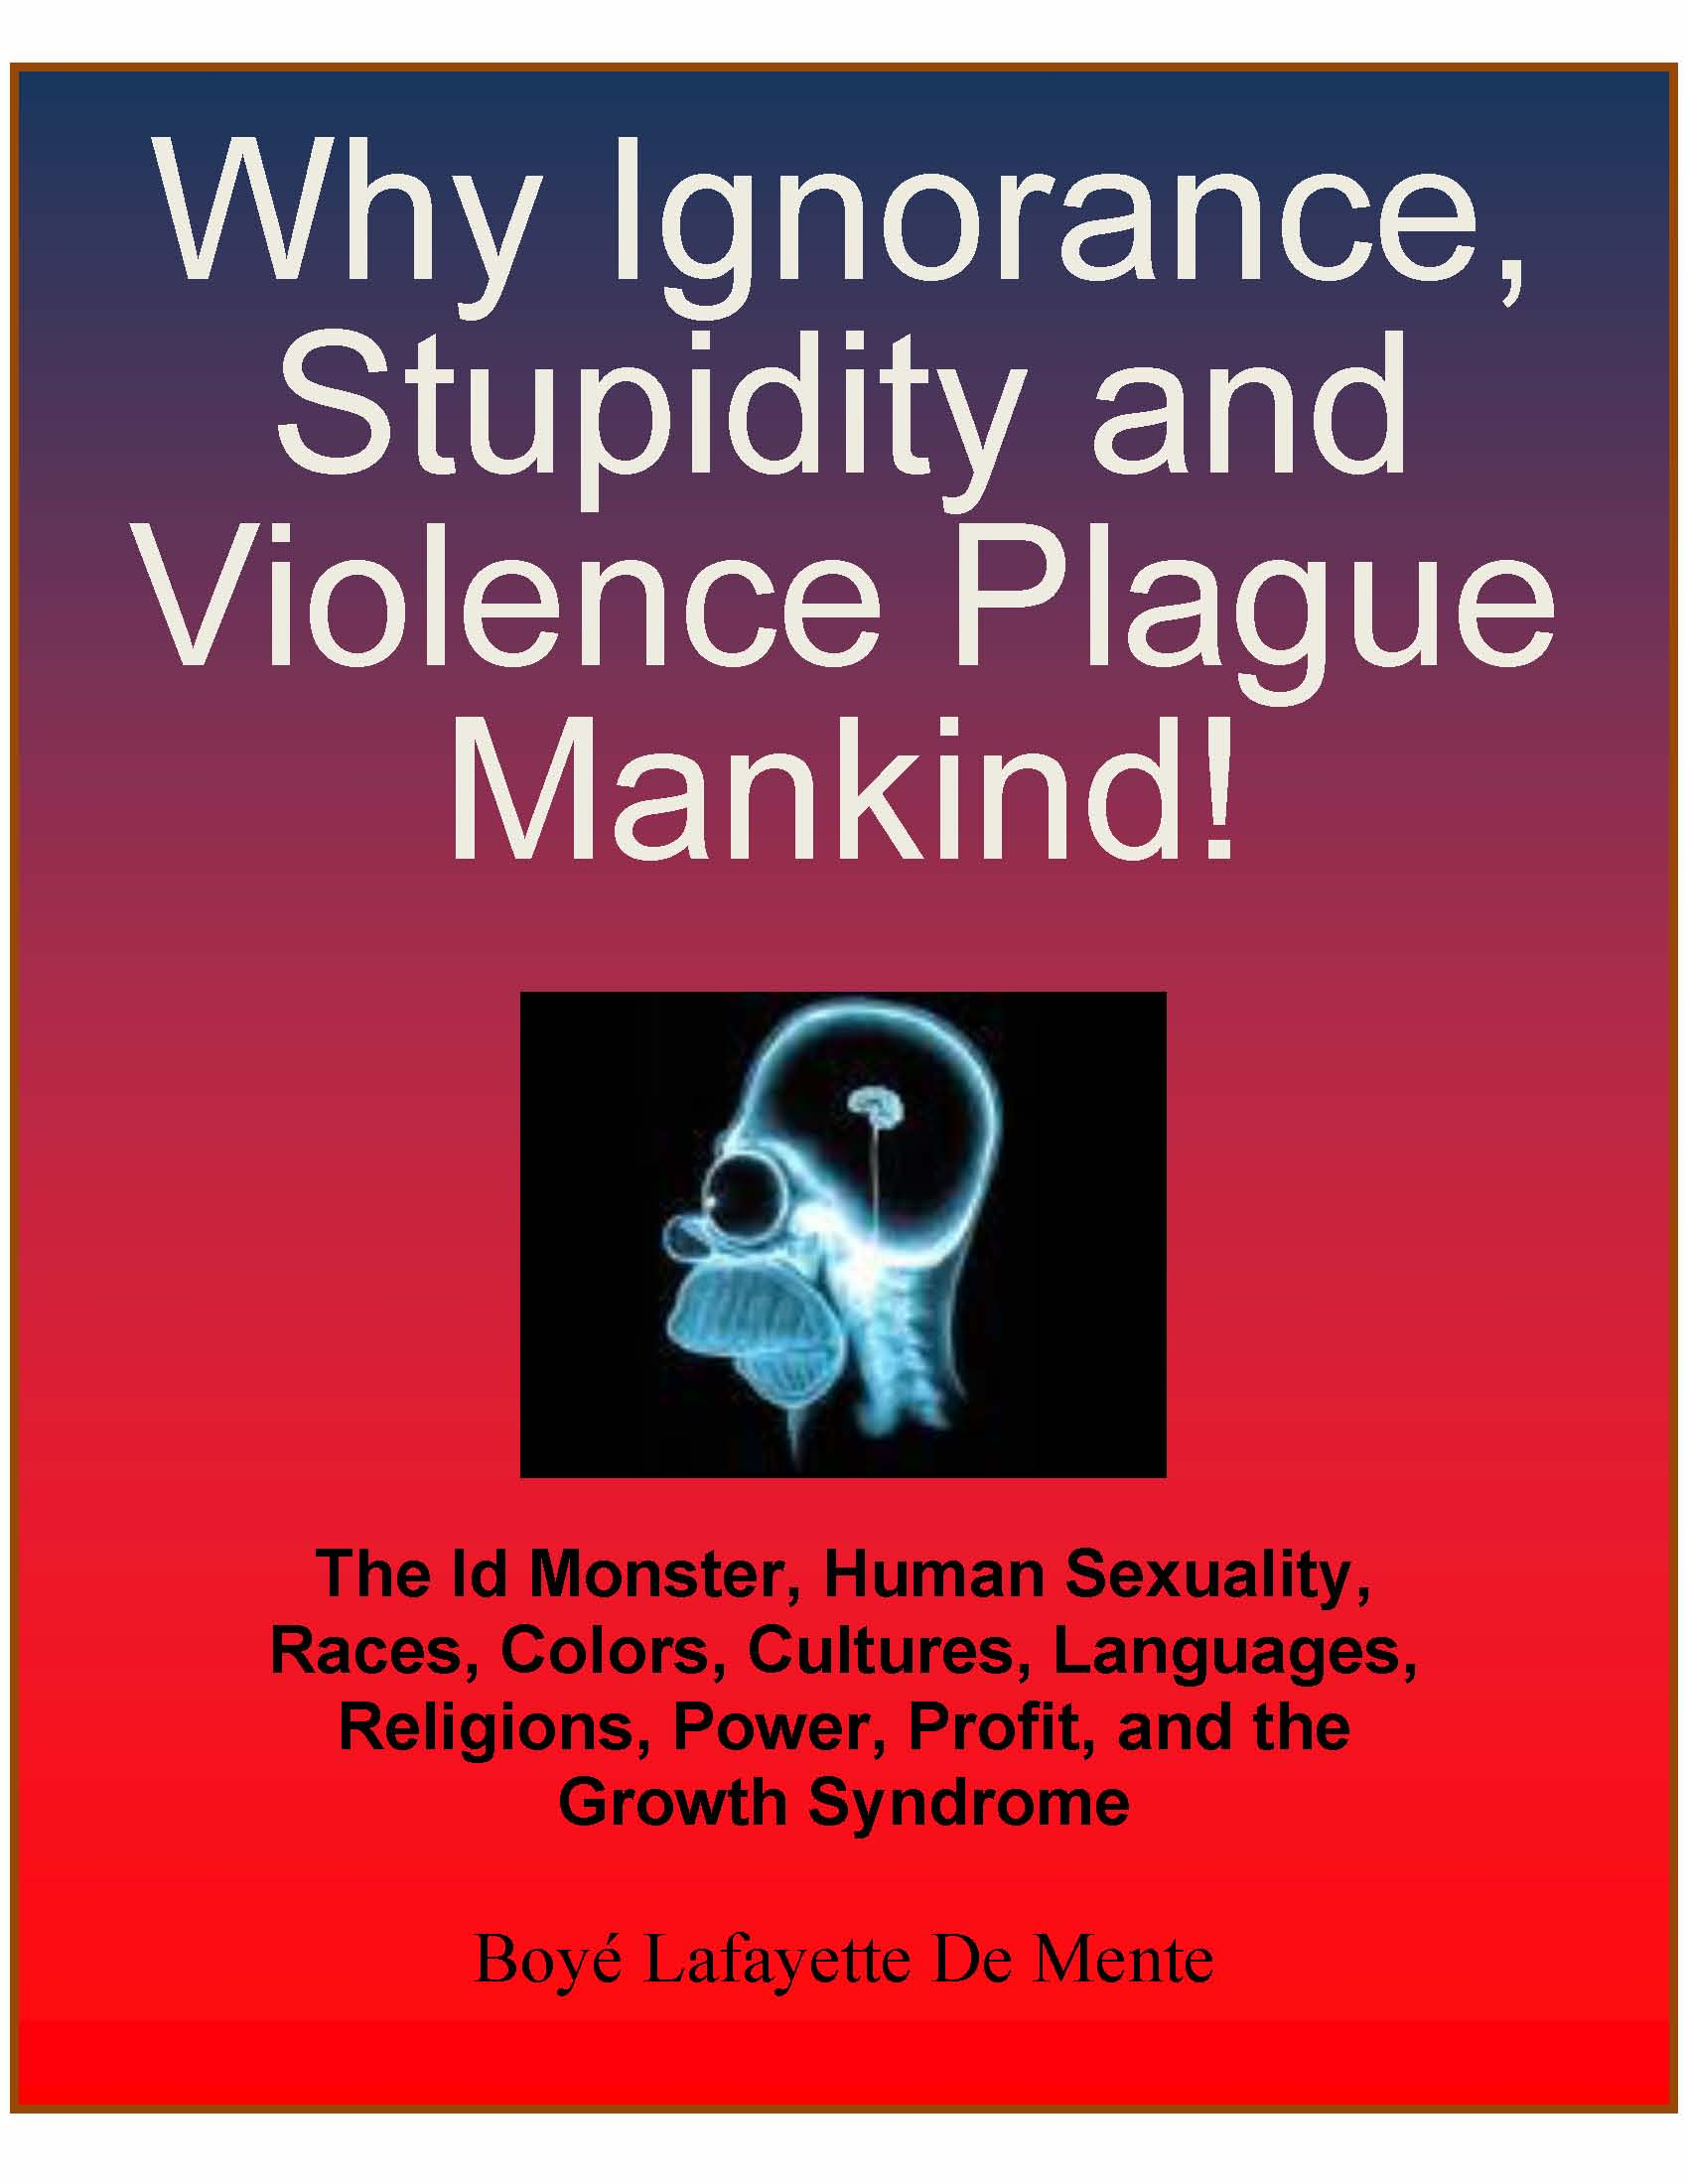 Books on human sexuality